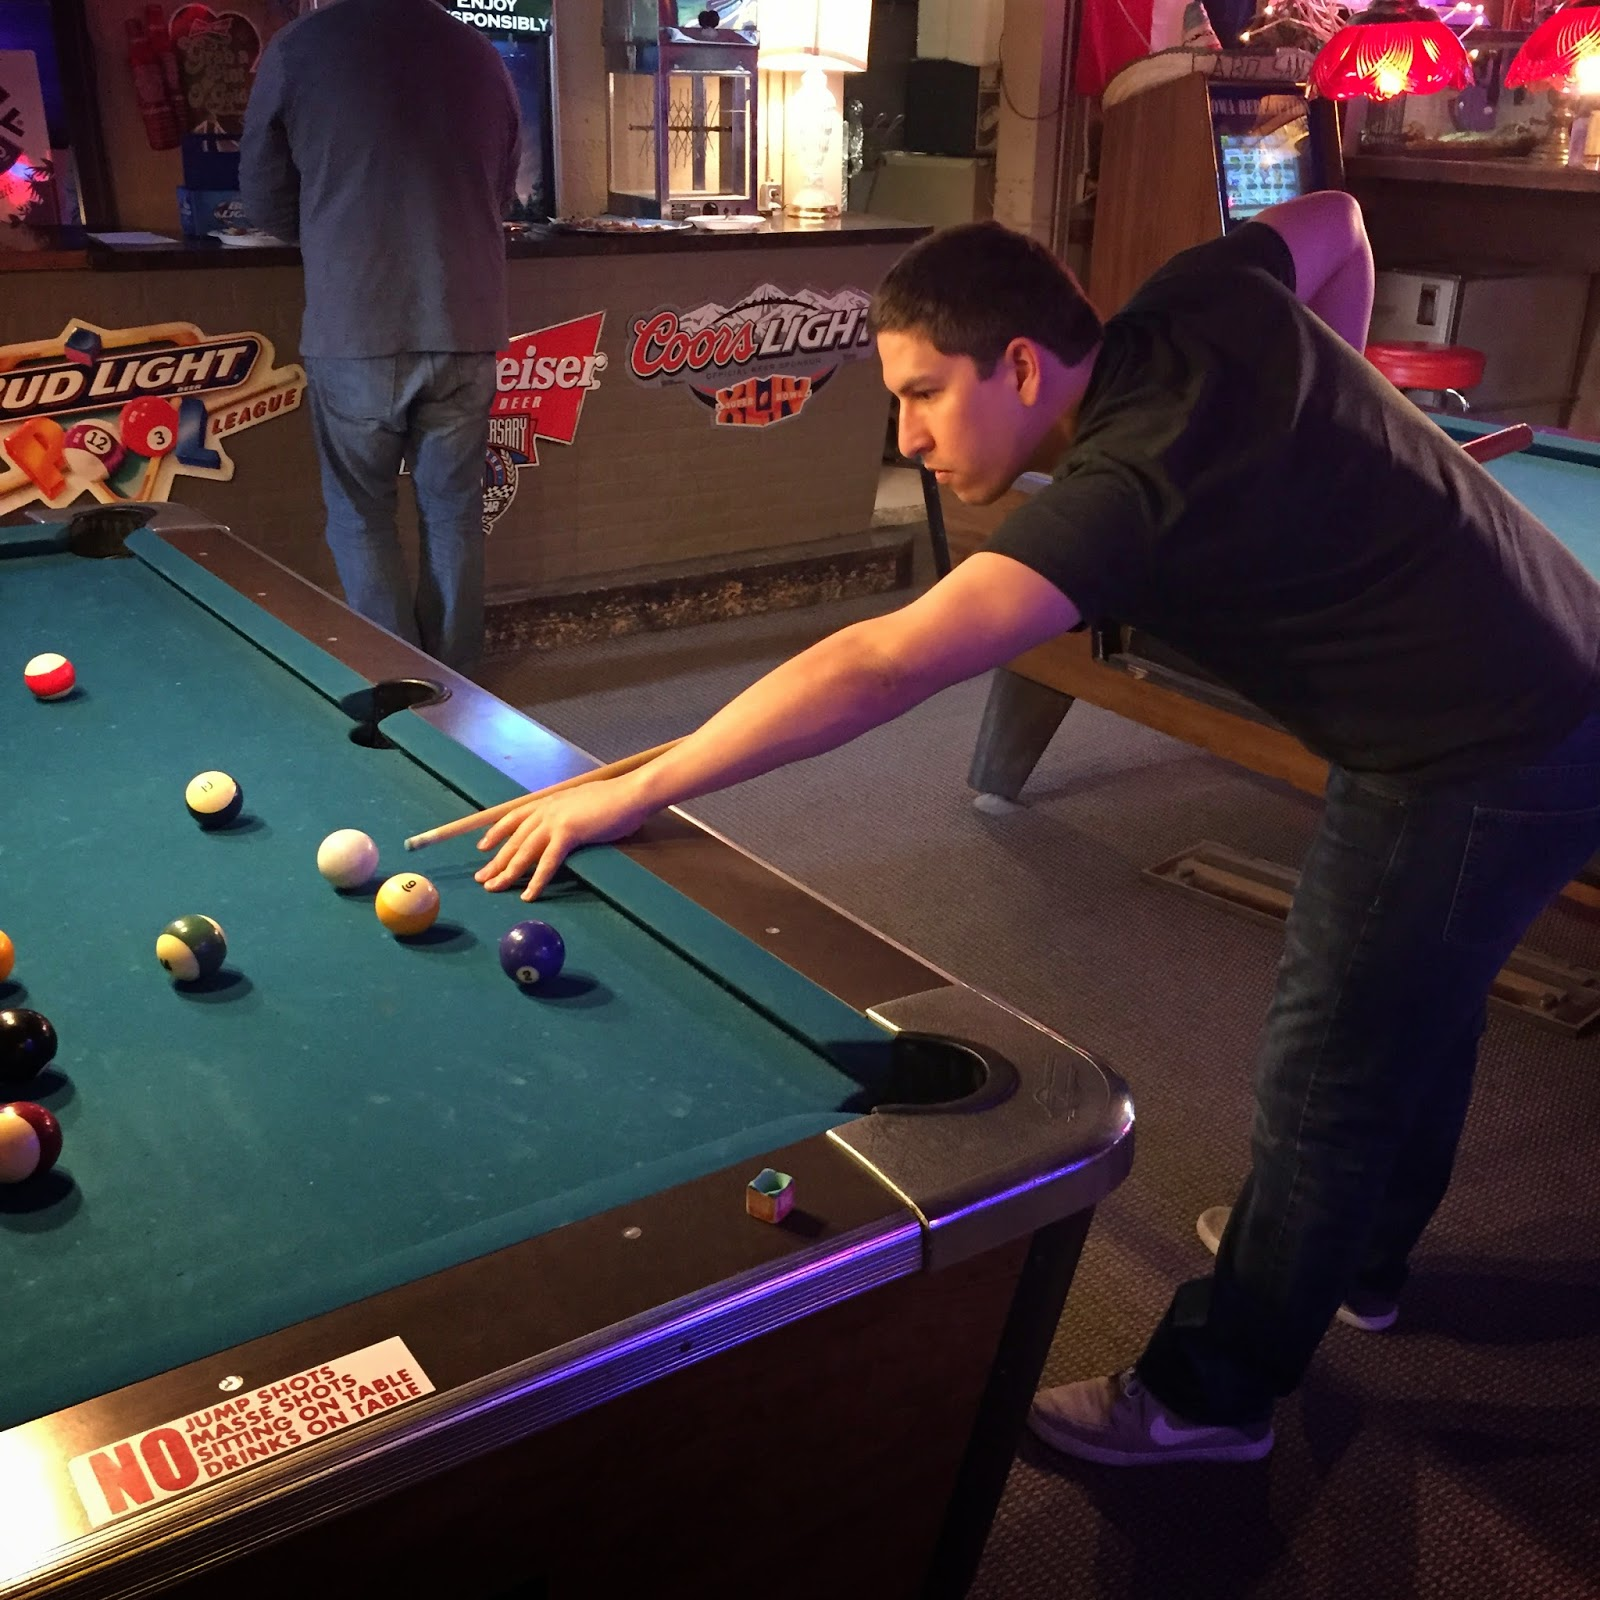 playing pool at stevie c's dive bar grimes